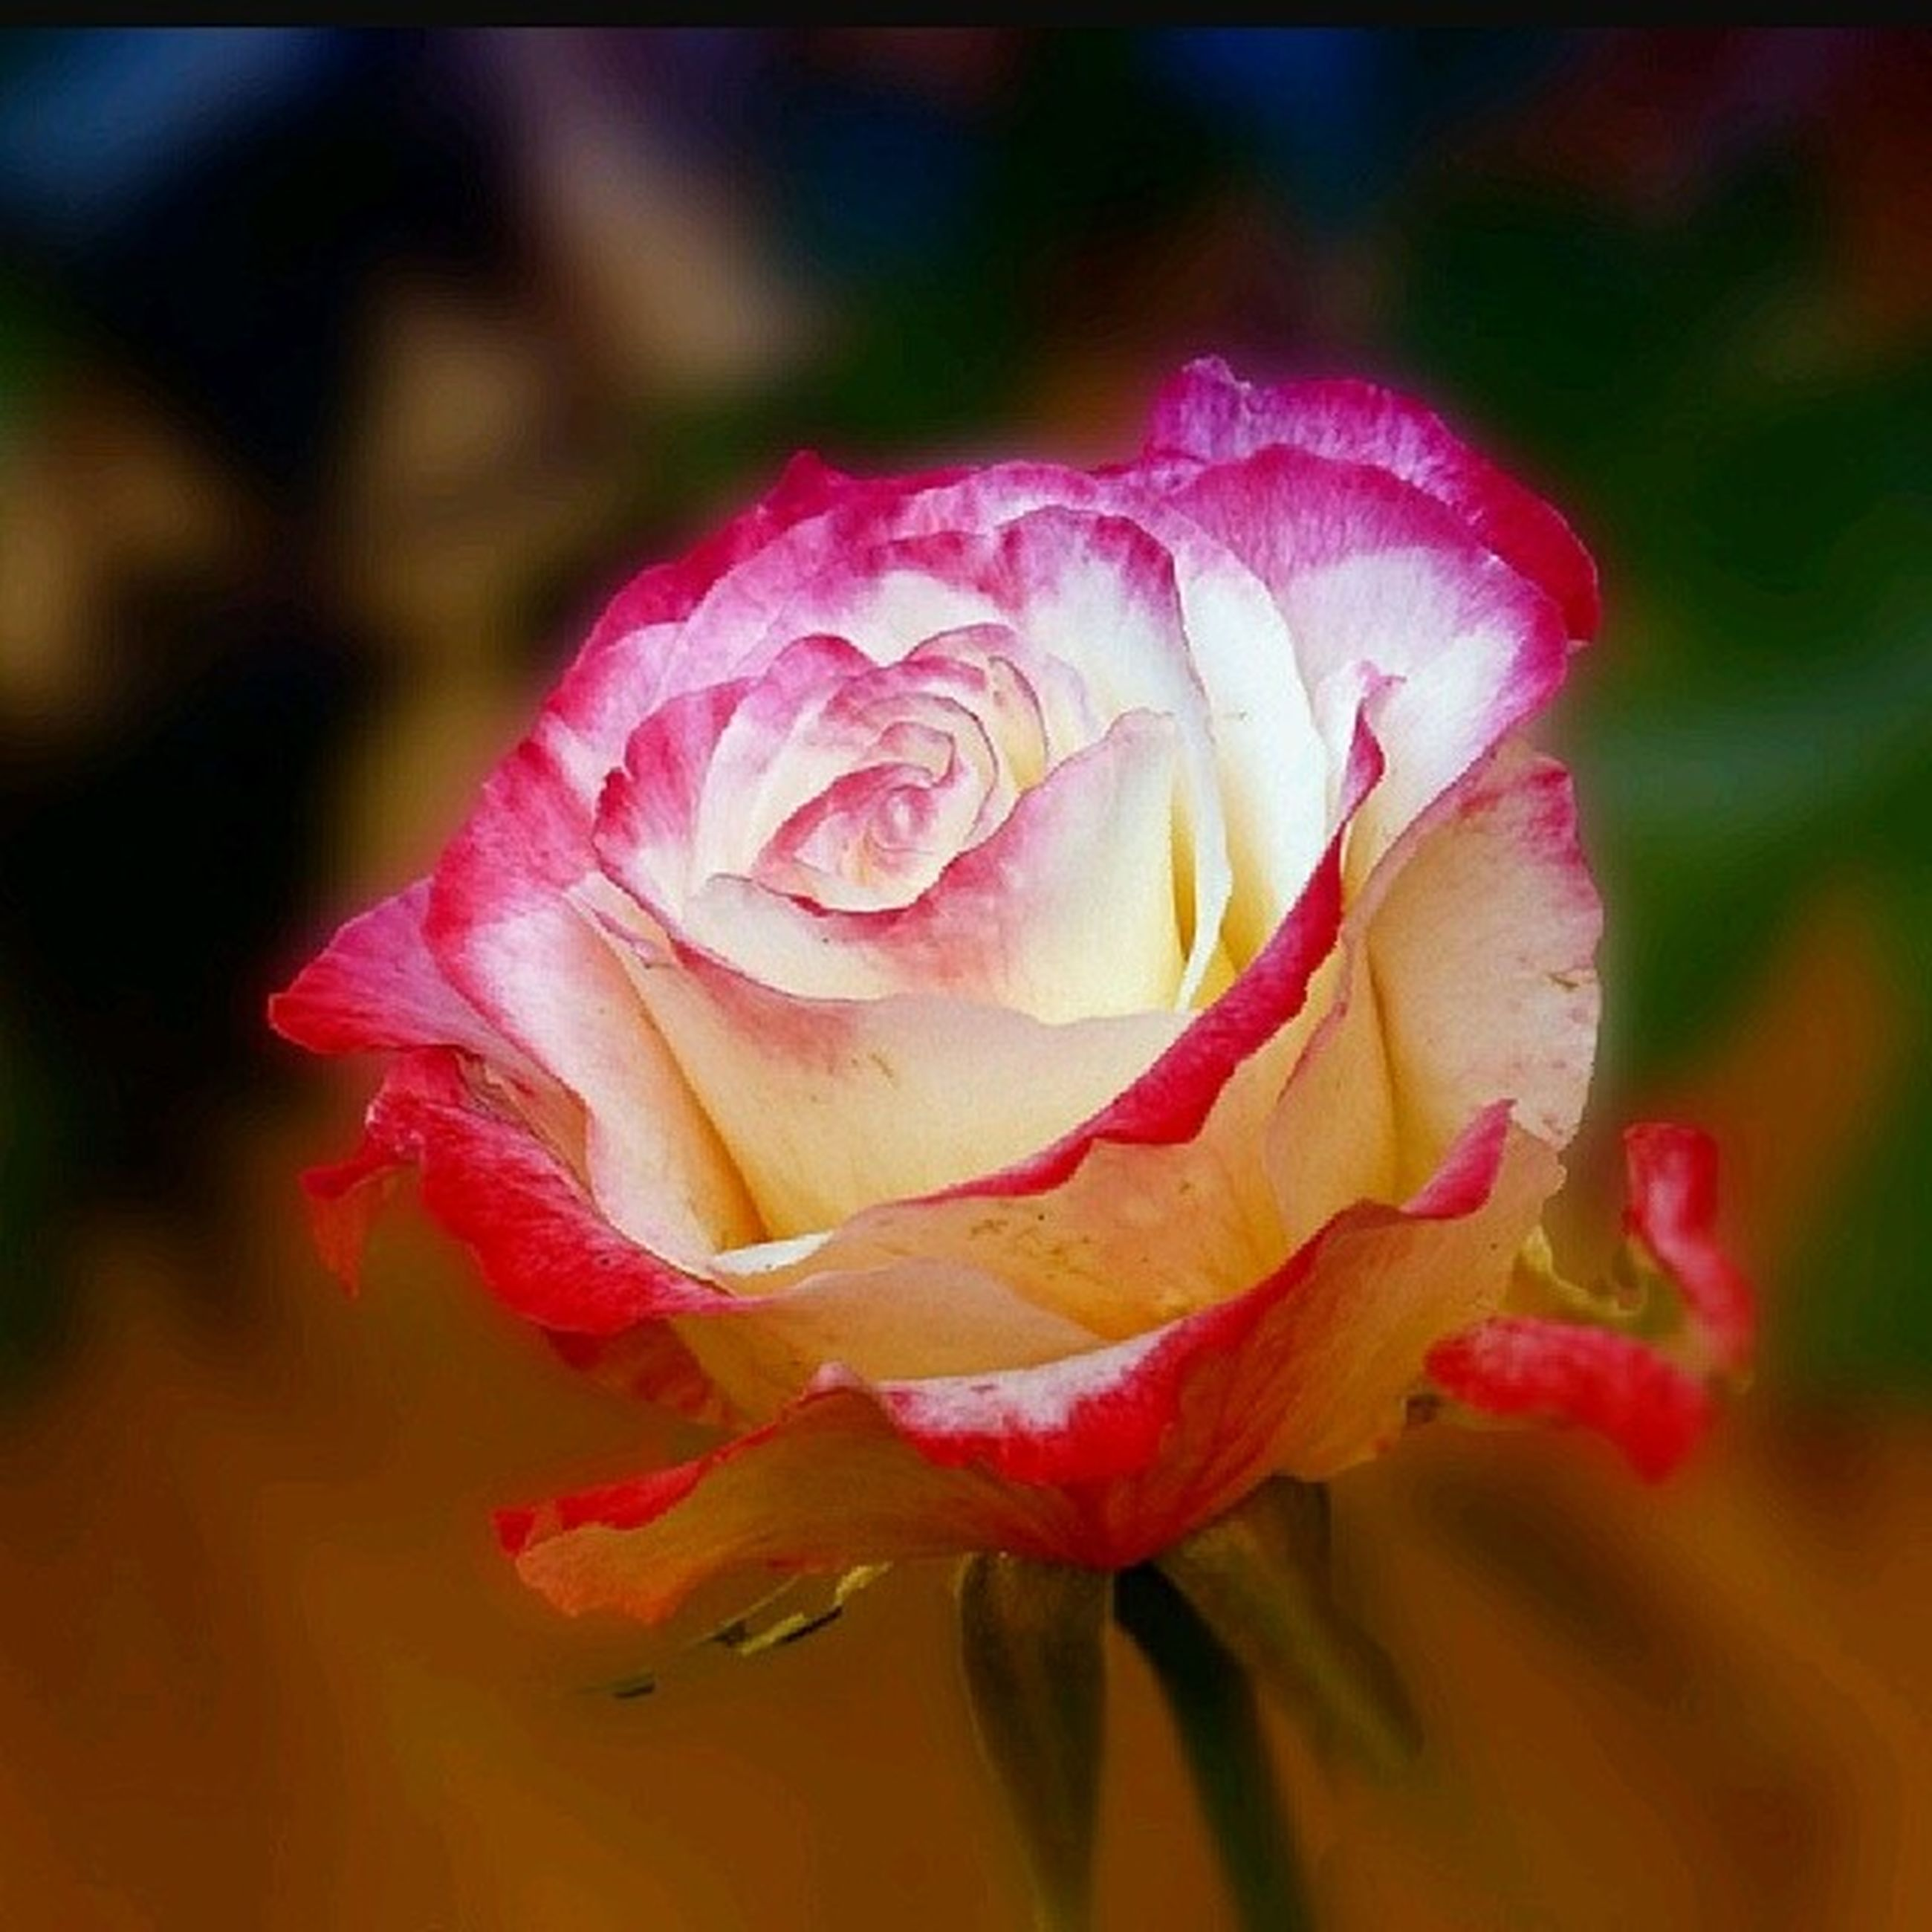 flower, petal, flower head, fragility, freshness, close-up, beauty in nature, single flower, rose - flower, growth, focus on foreground, blooming, nature, pink color, in bloom, plant, selective focus, blossom, rose, day